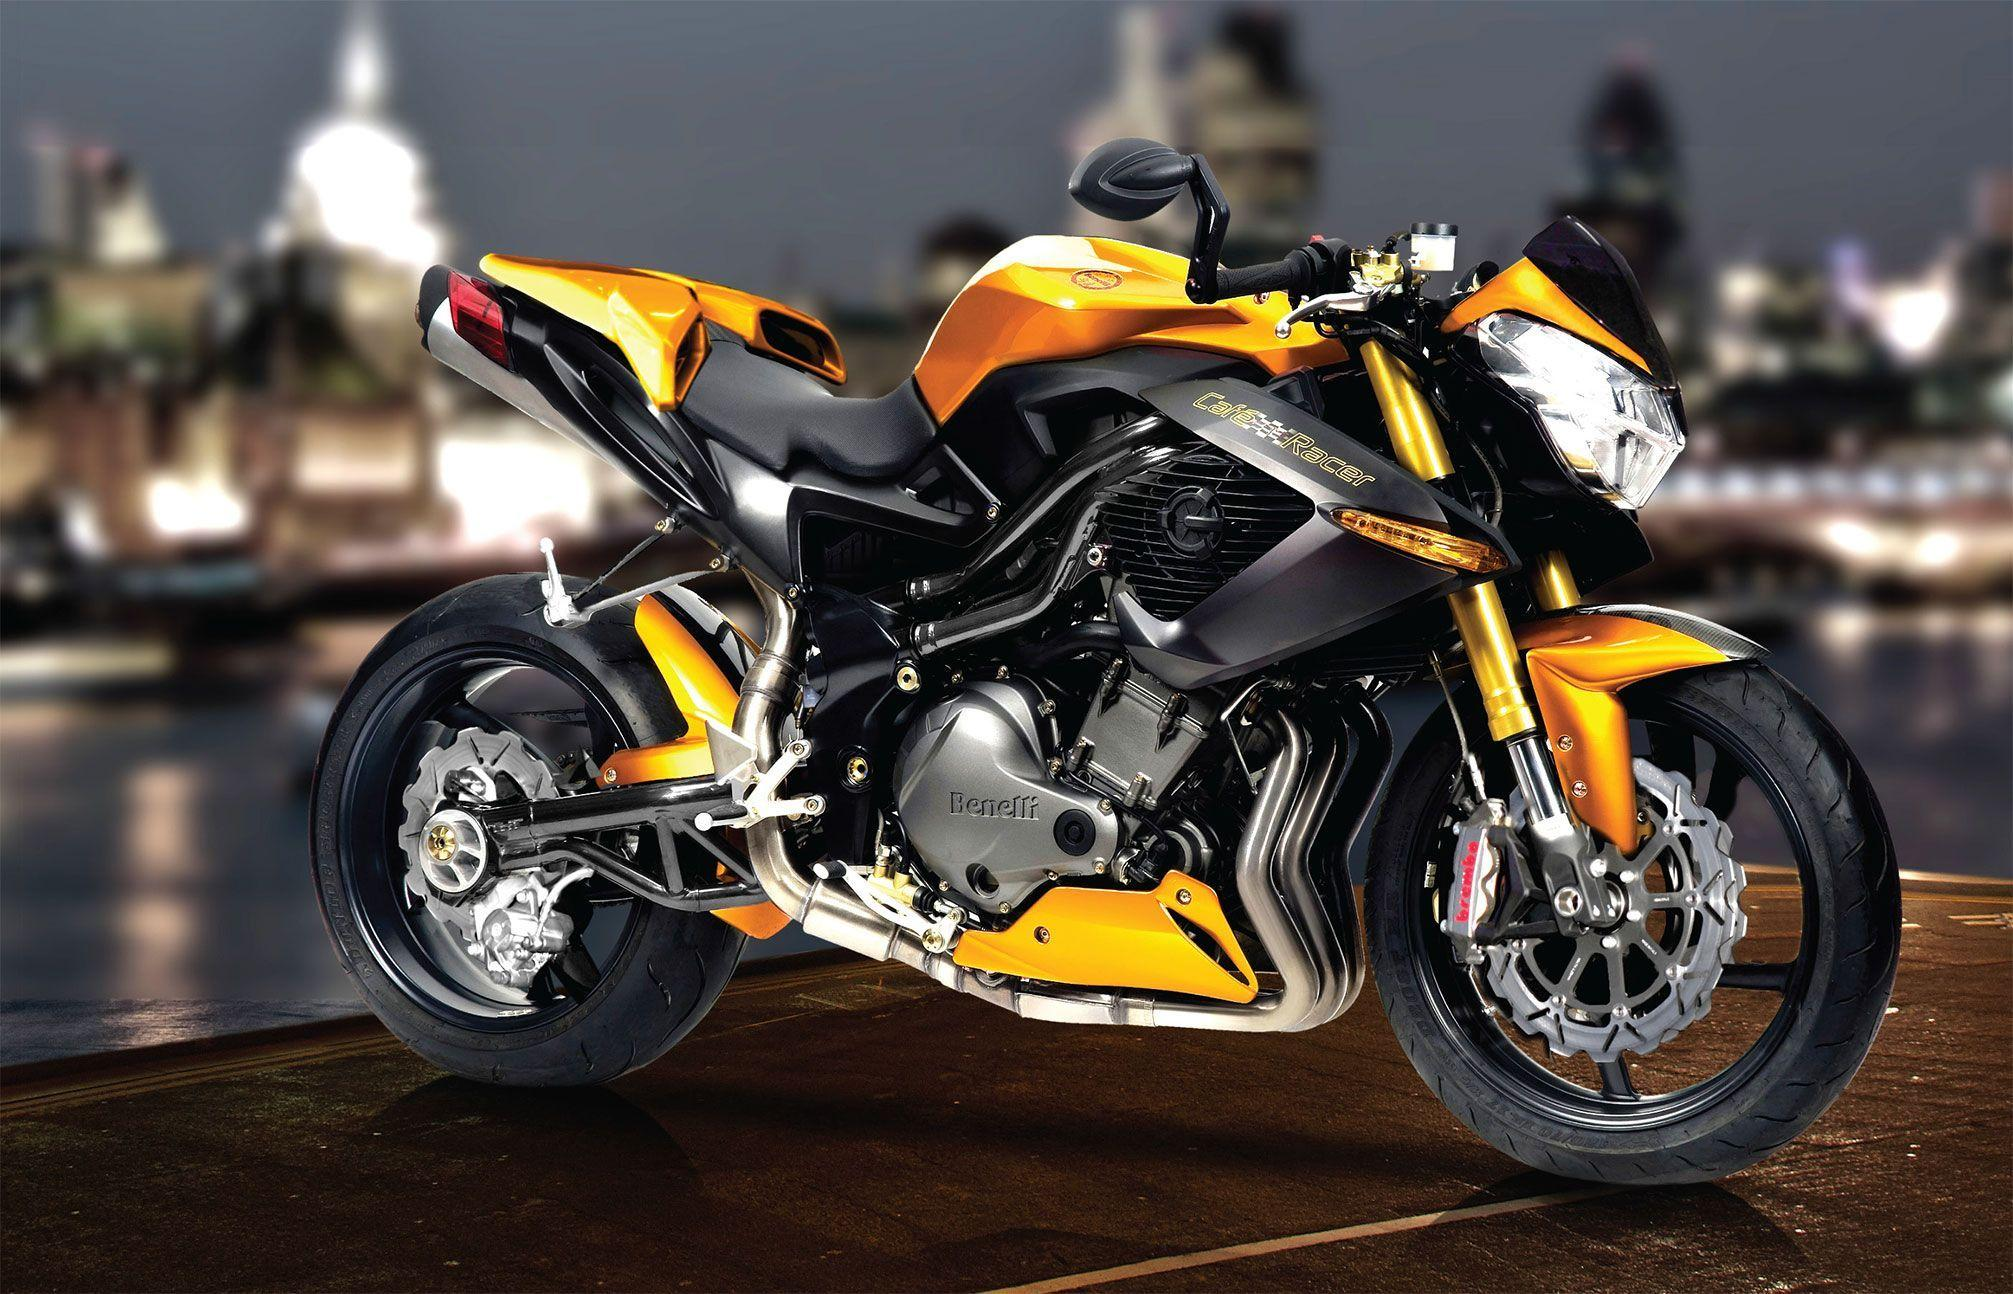 Benelli Wallpapers